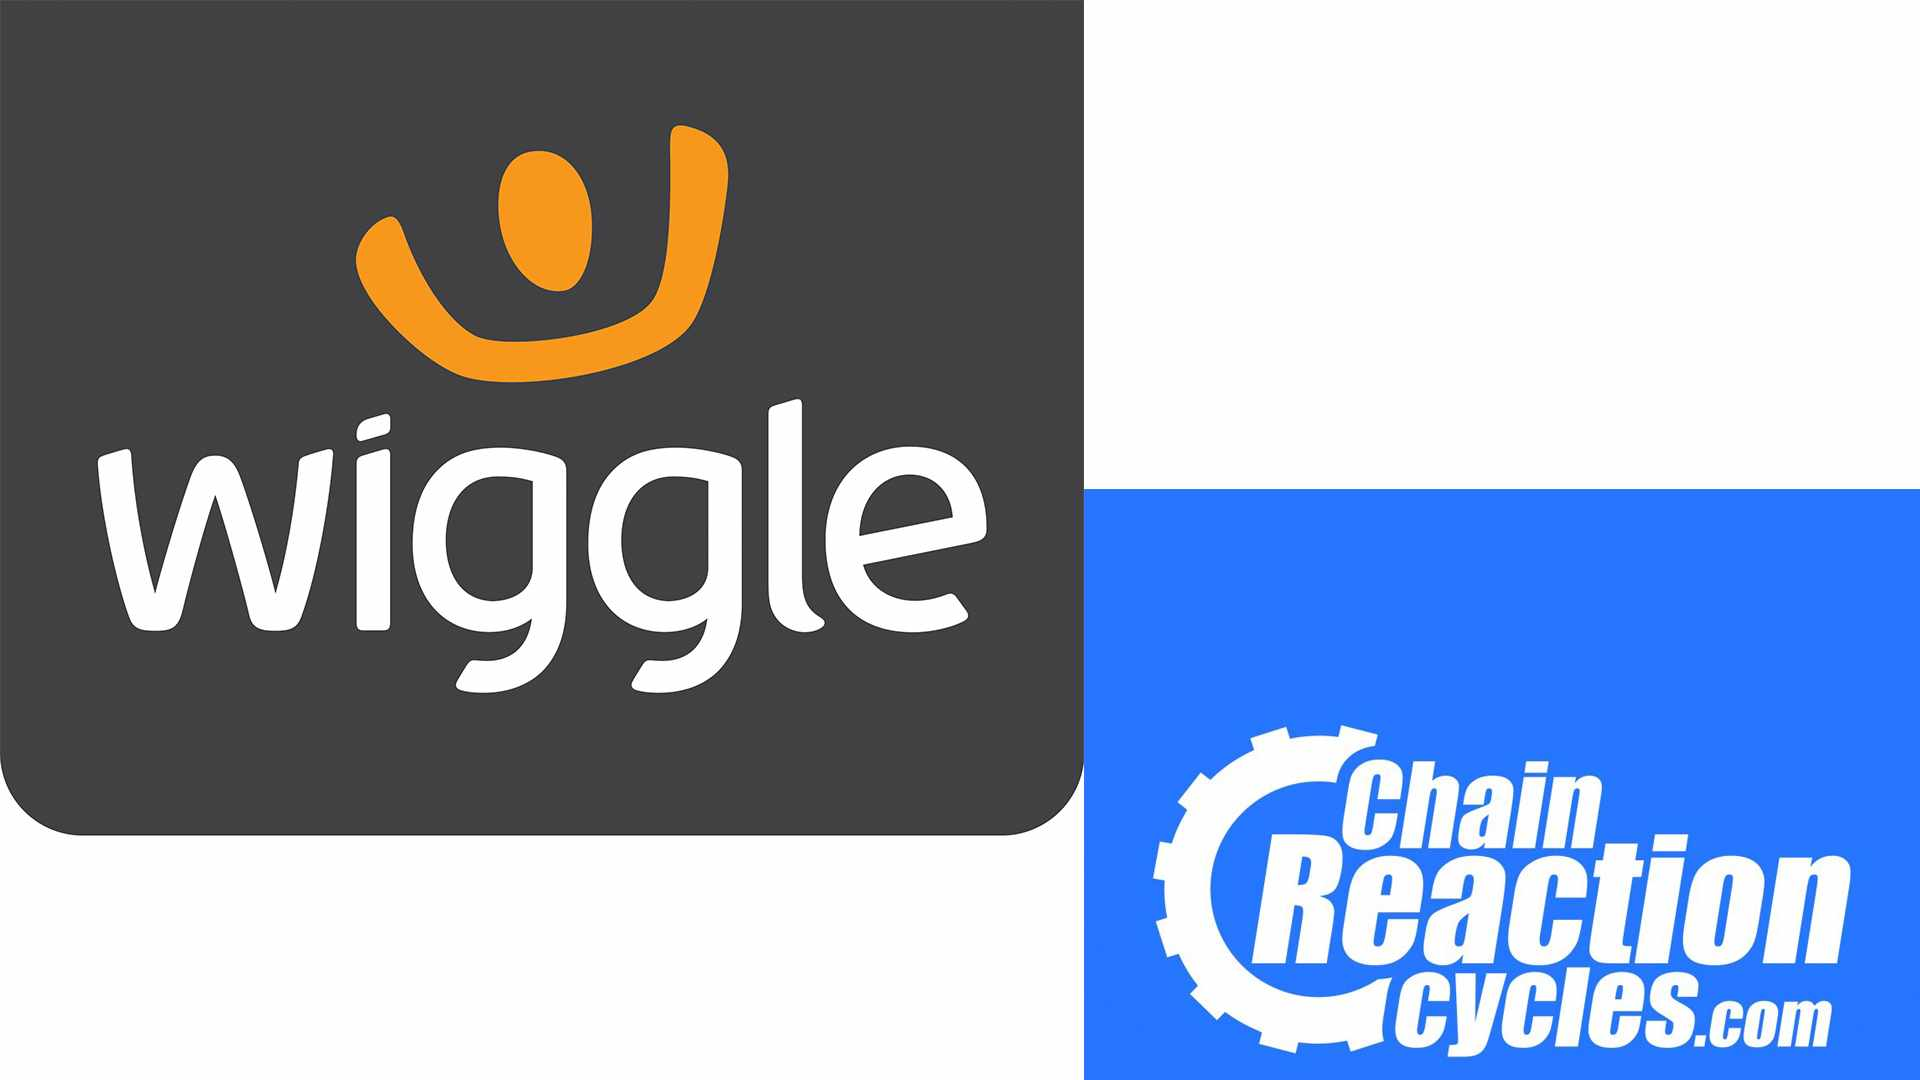 According to Bikebiz, Wiggle is set to purchase Chain Reaction Cycles